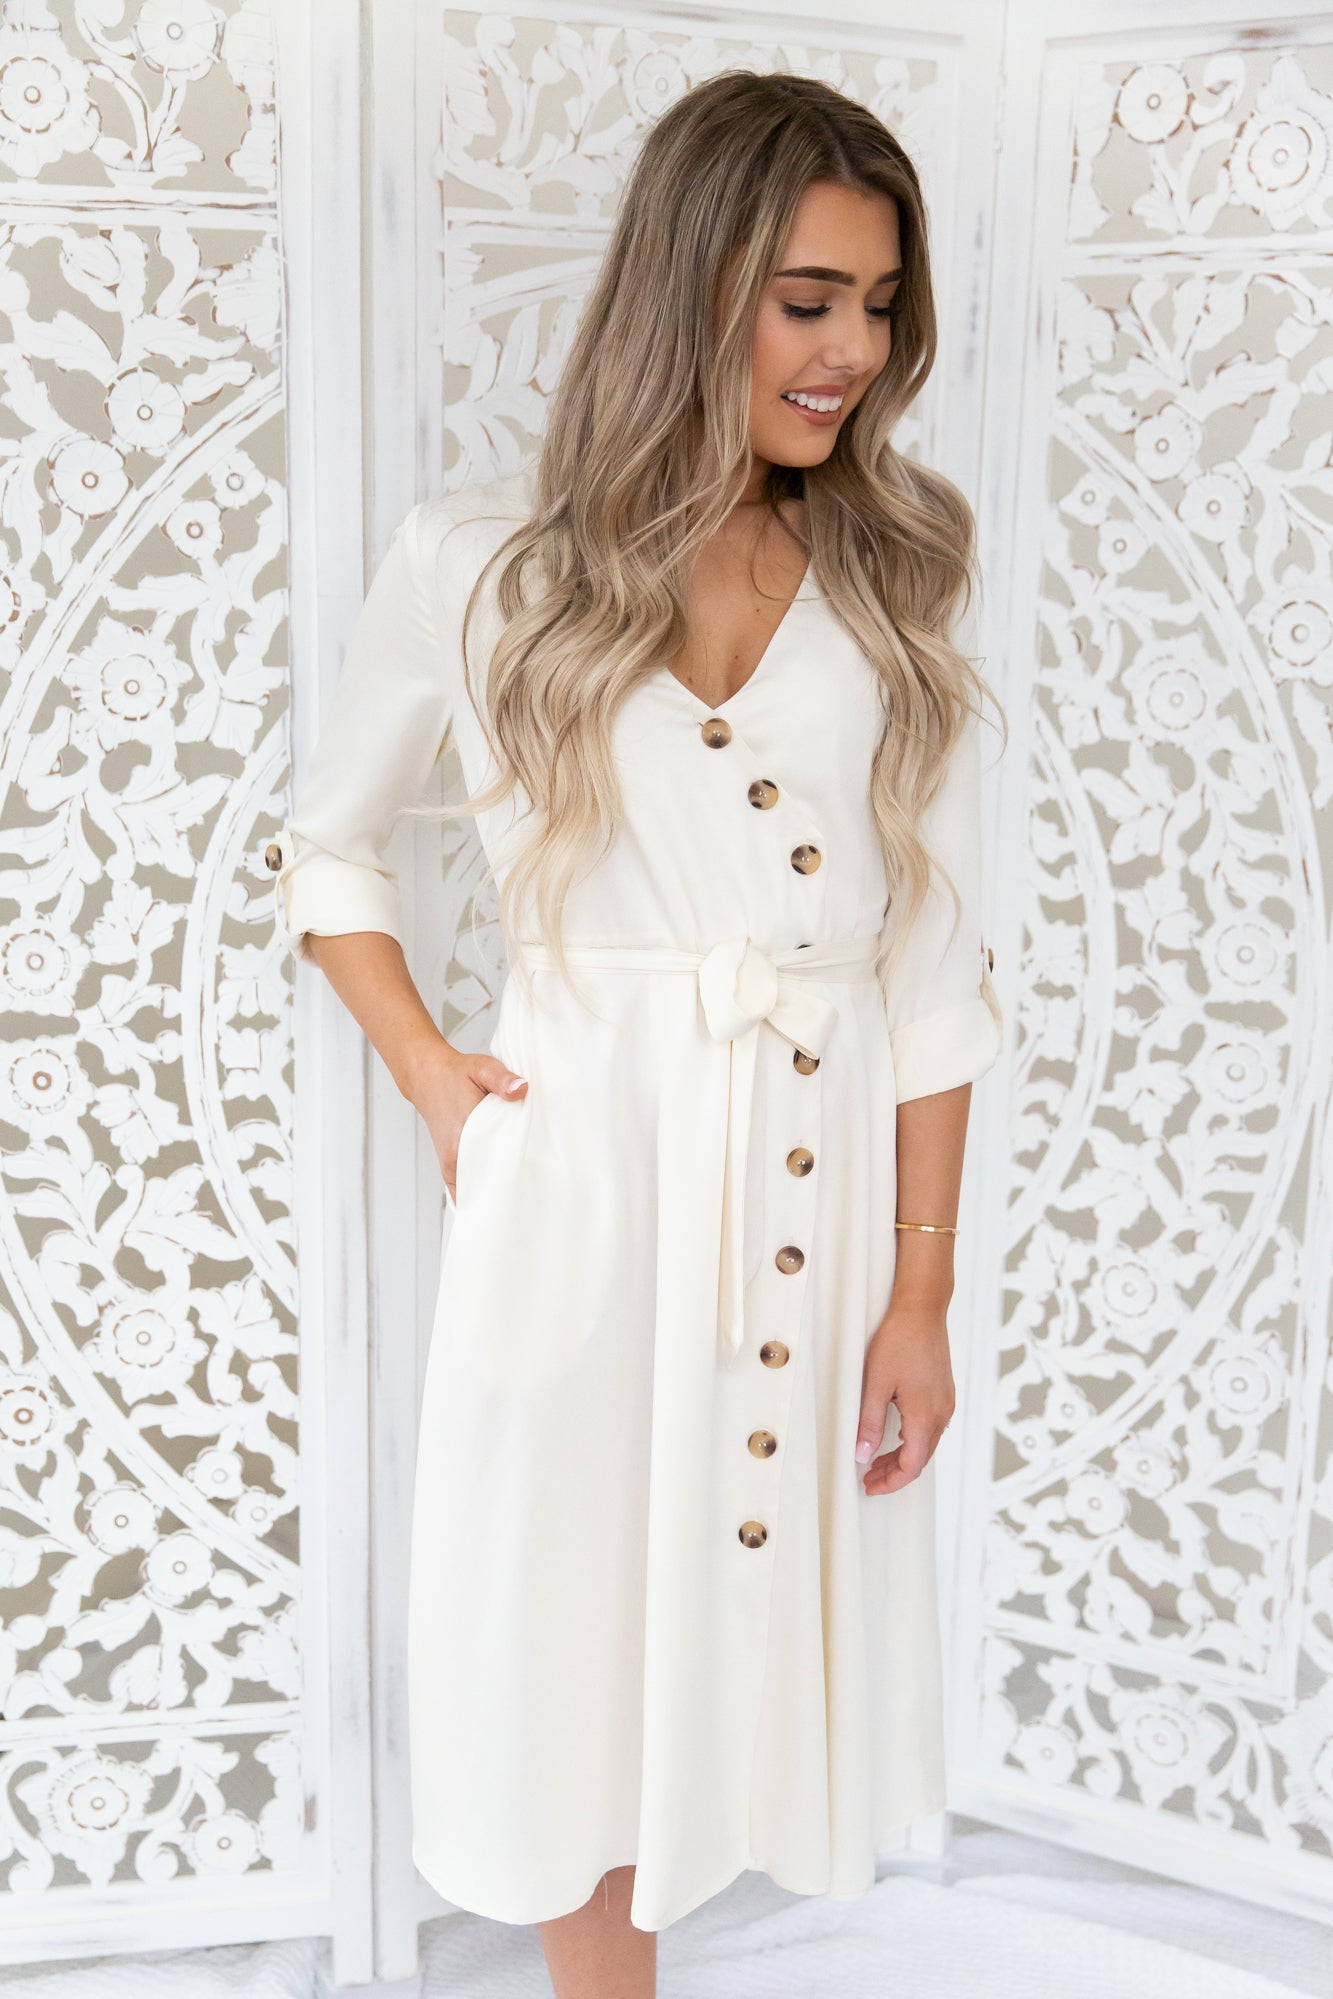 Madison Button Down Dress - llacie